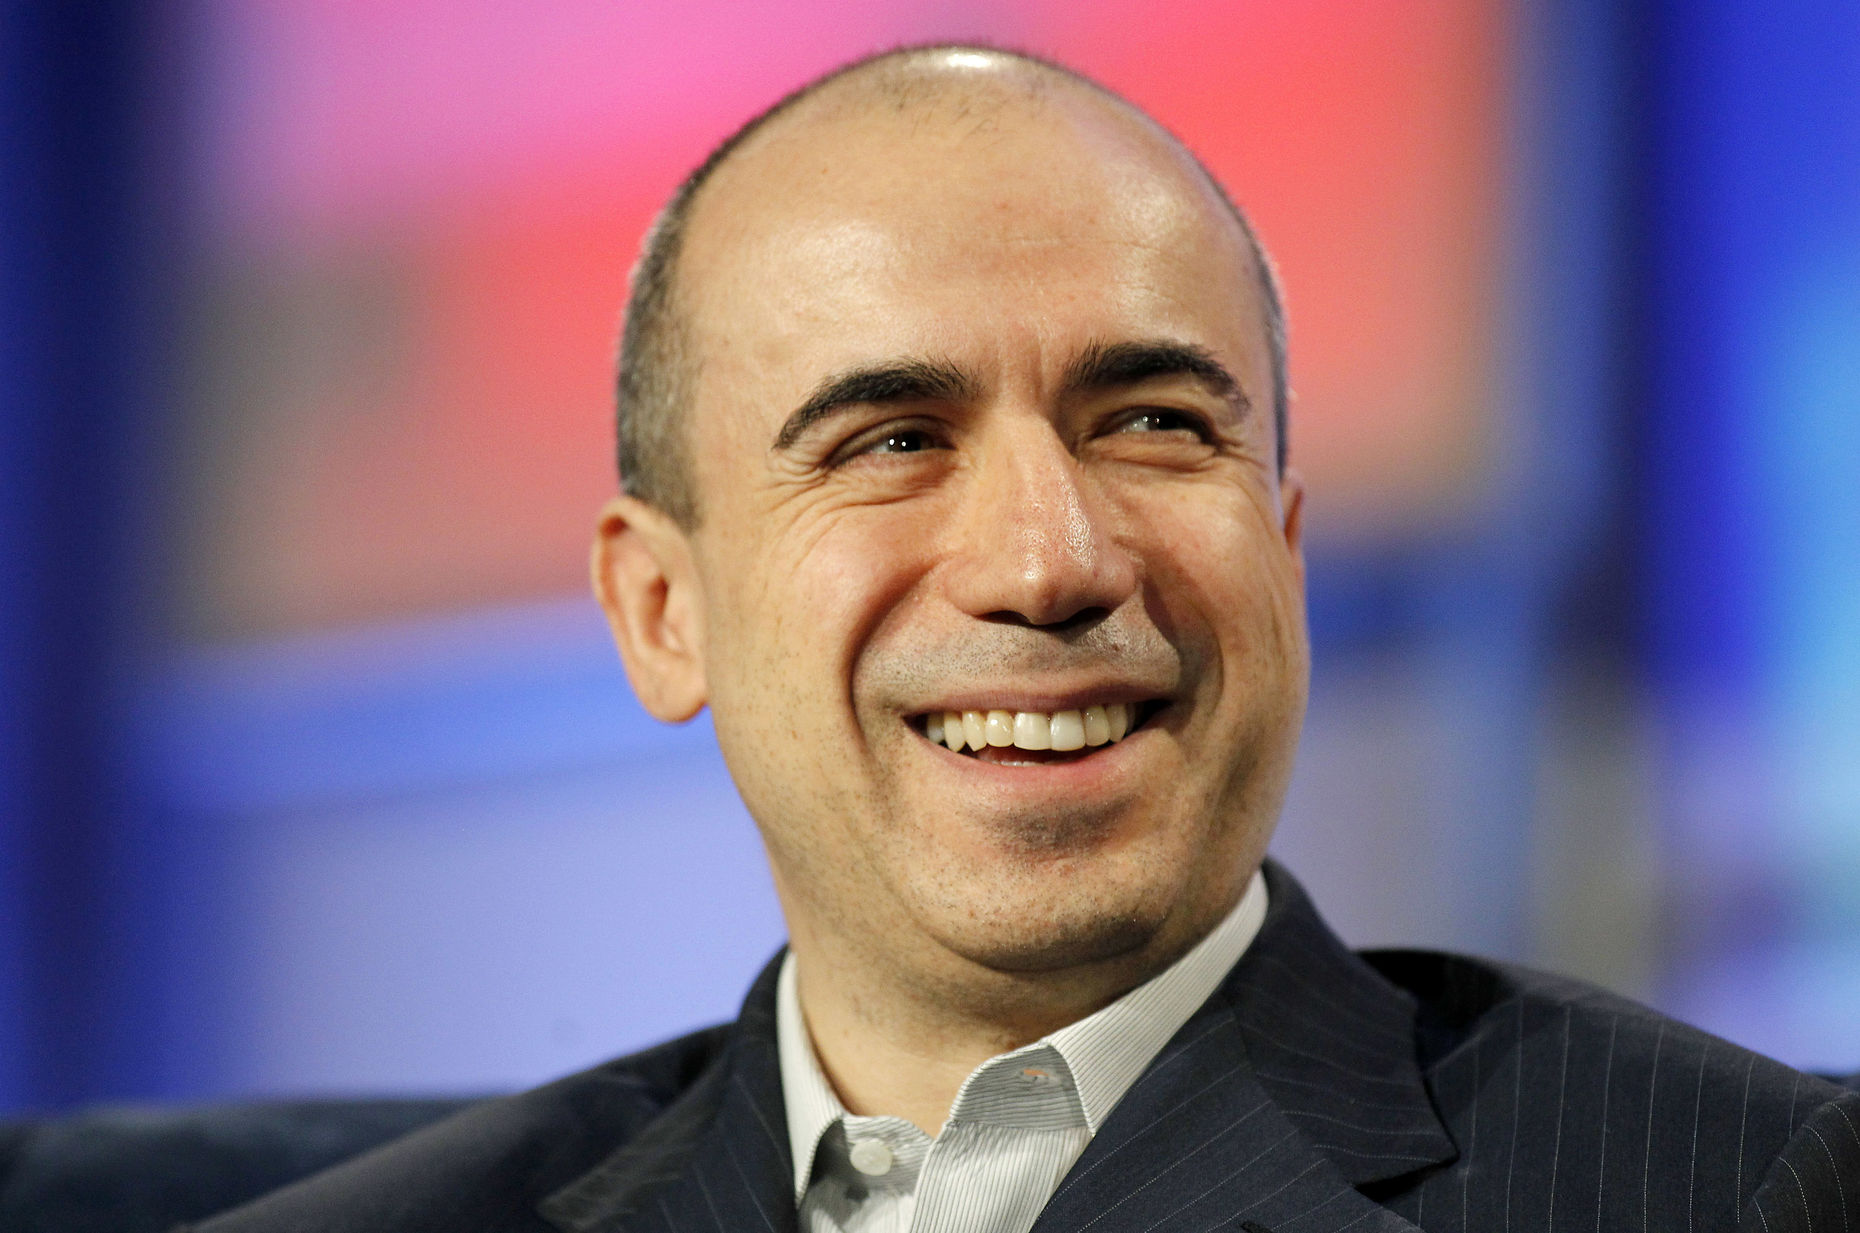 DST founder Yuri Milner. Photo by Bloomberg.